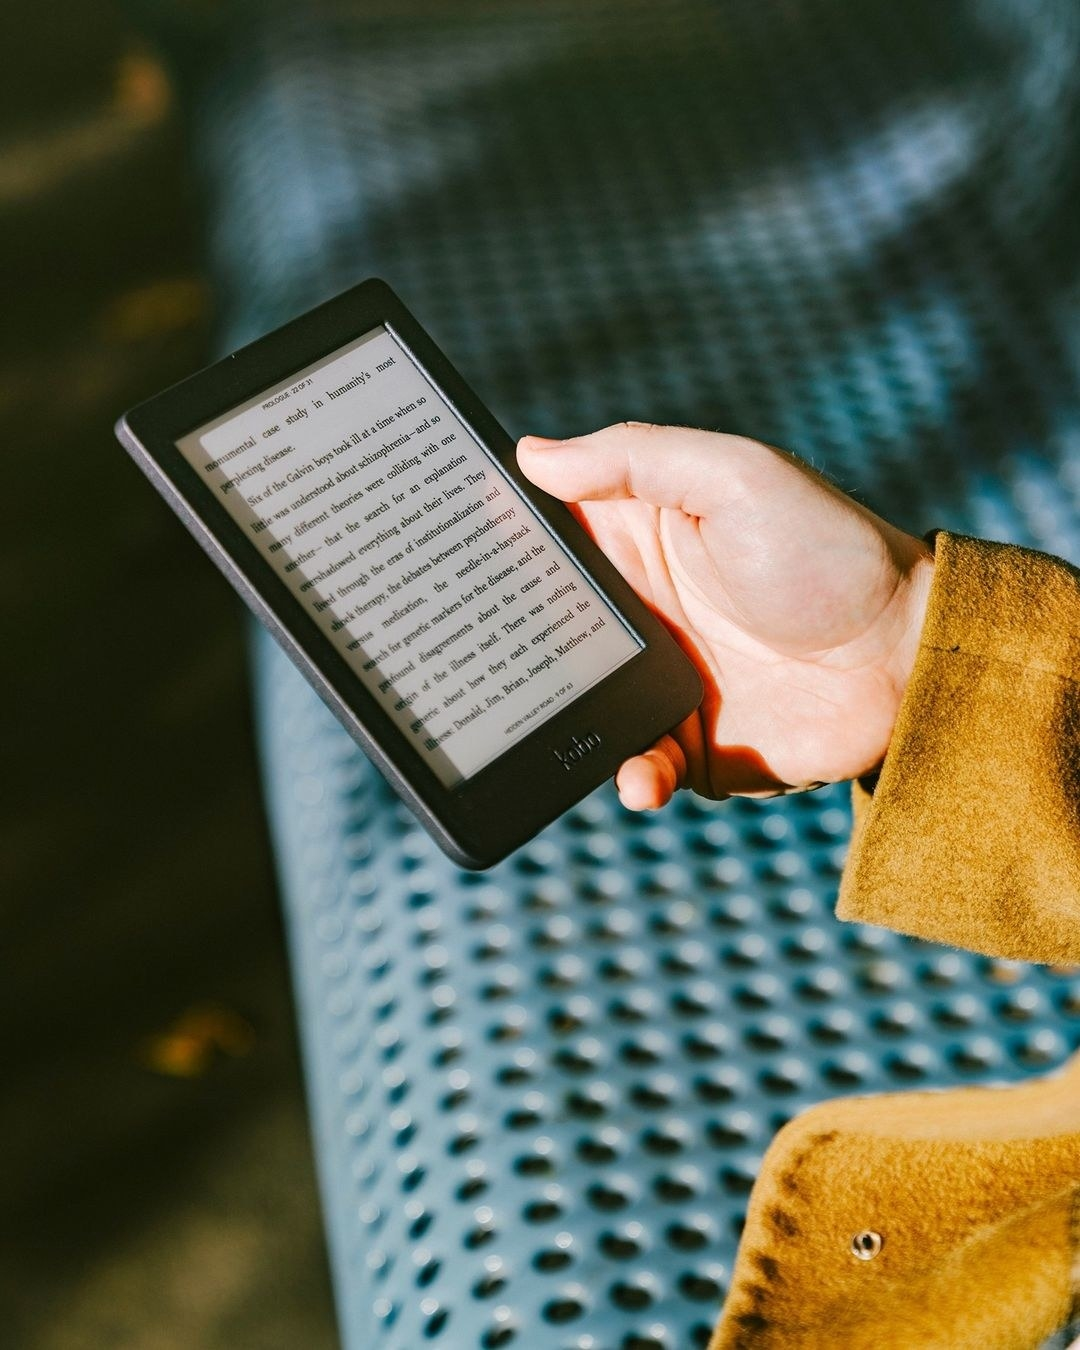 A person reading on their Kobo